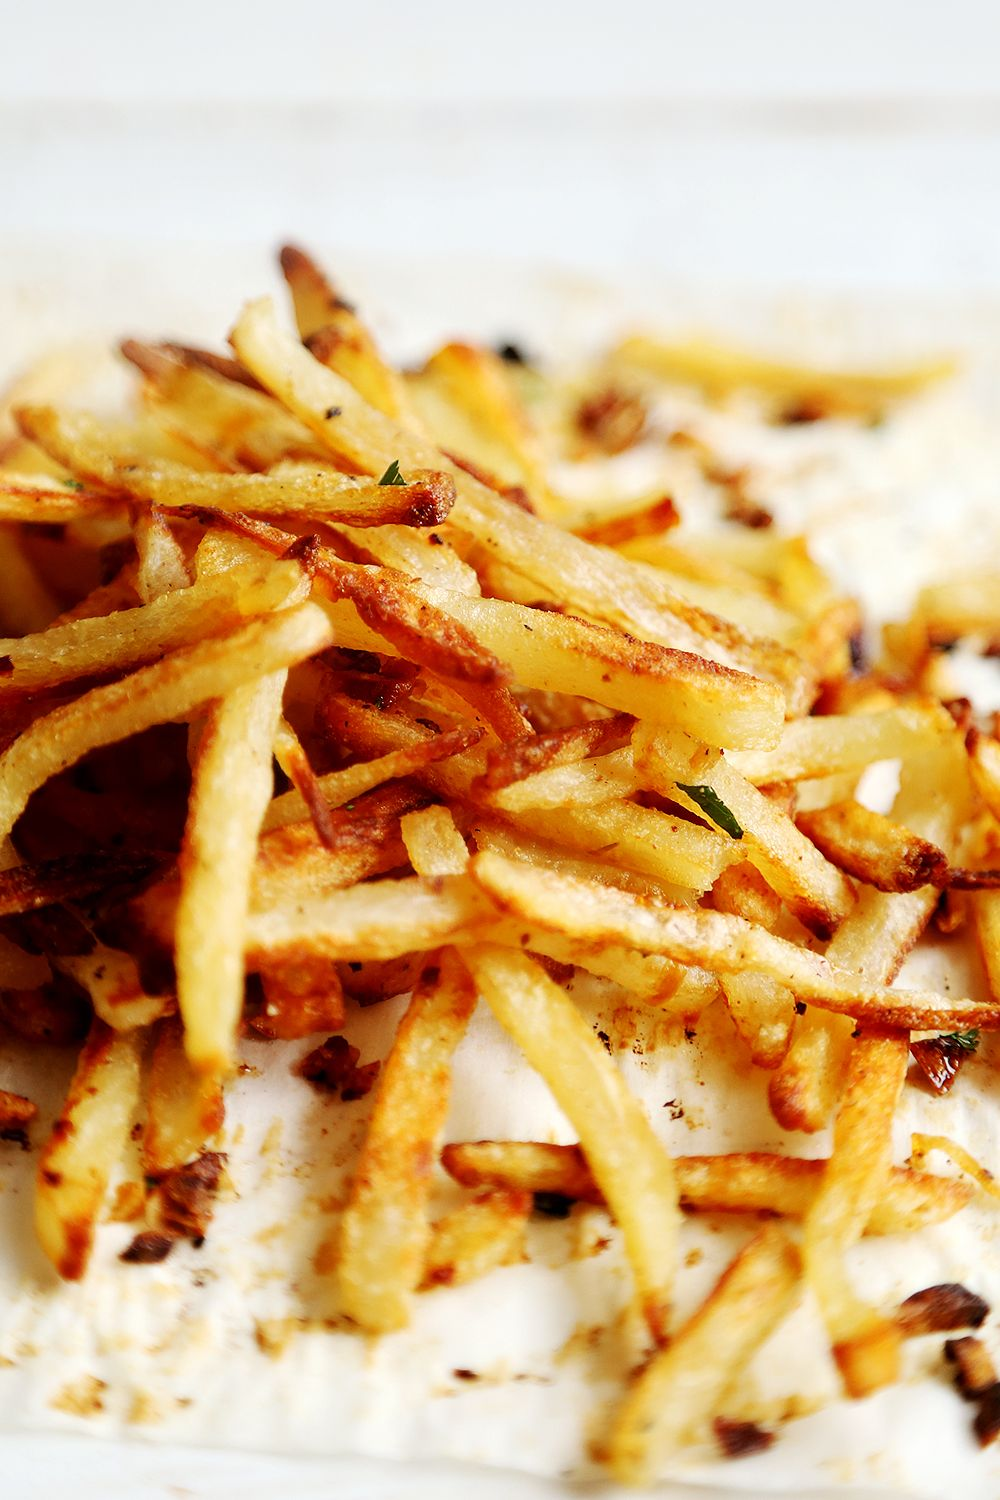 Thin and Crispy Oven Baked Garlic and Cilantro French Fries ...